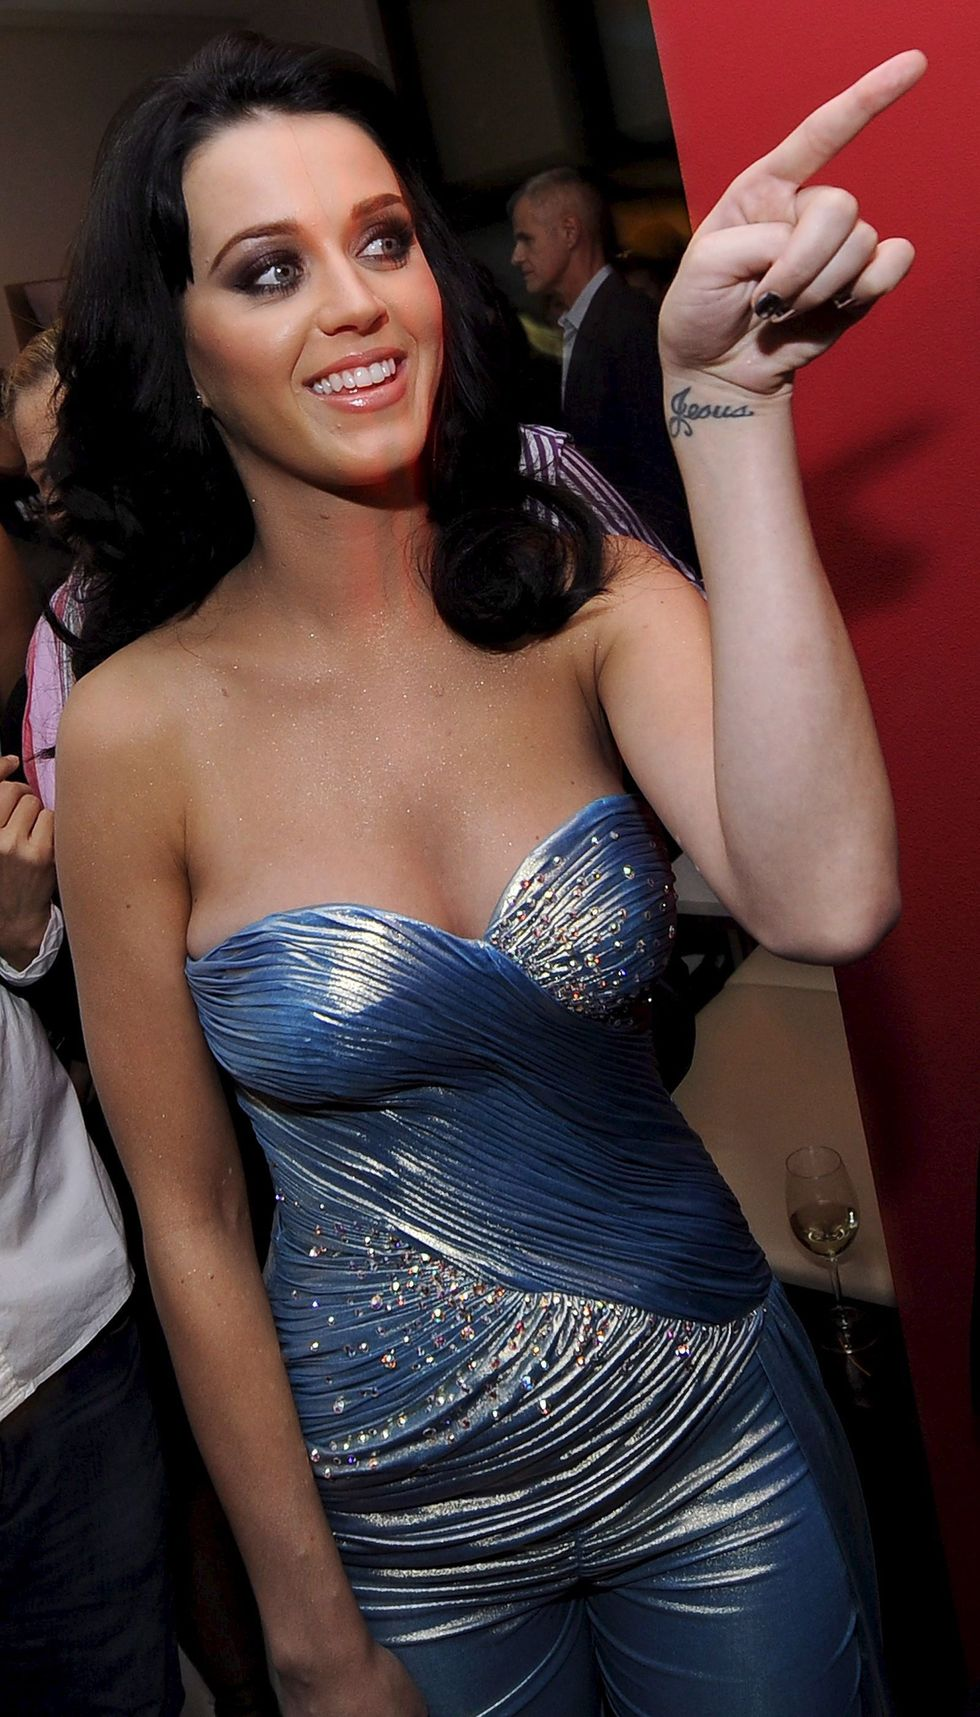 katy-perry-2009-life-ball-cocktail-party-in-vienna-01